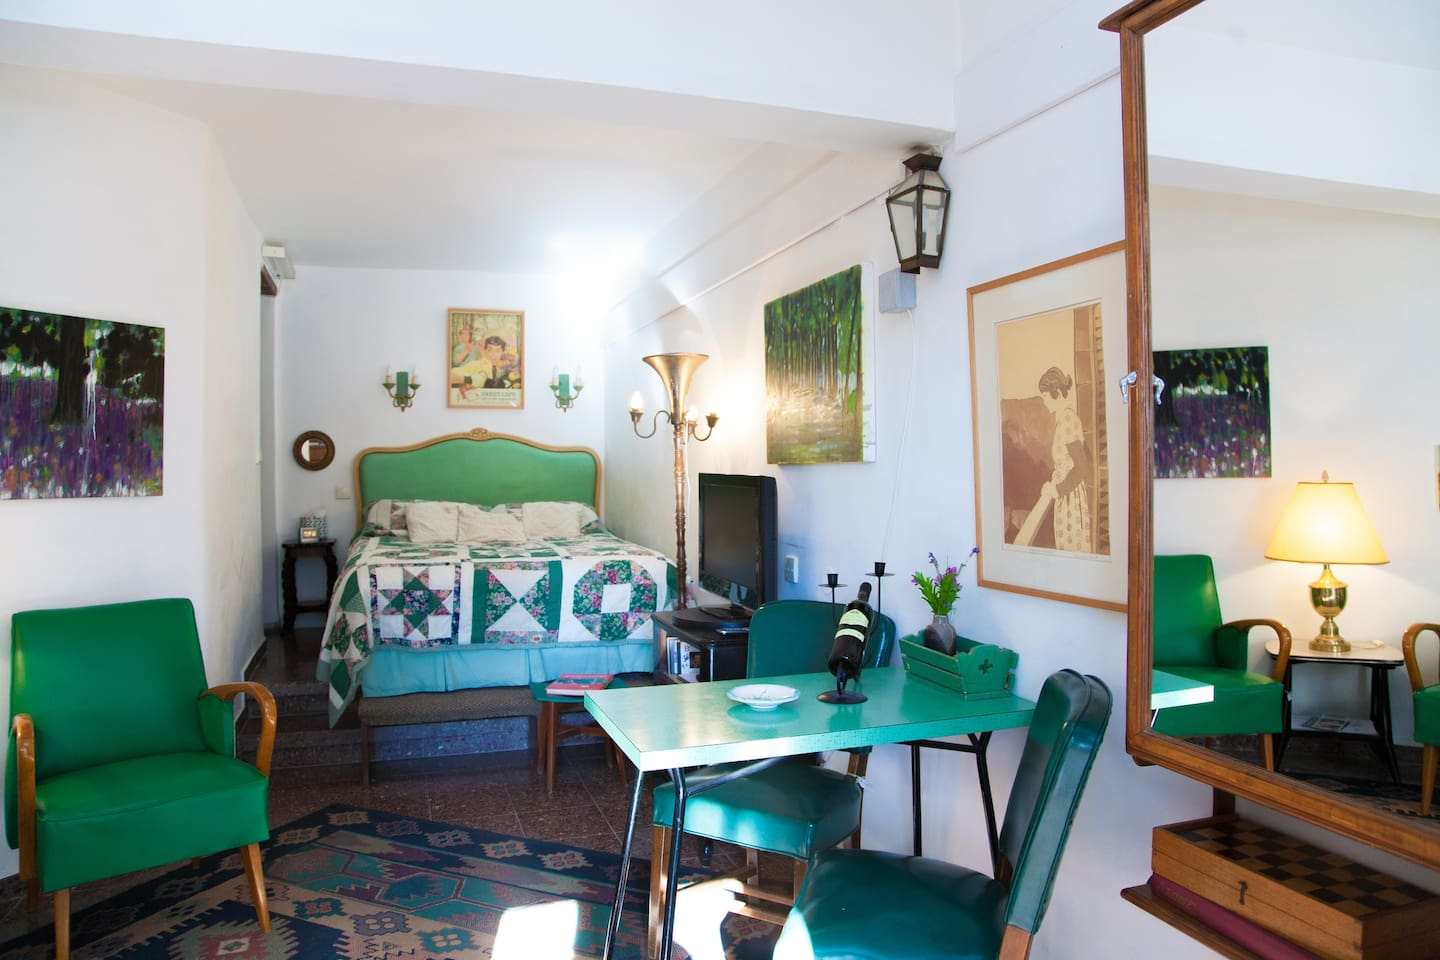 The Green Room - General view